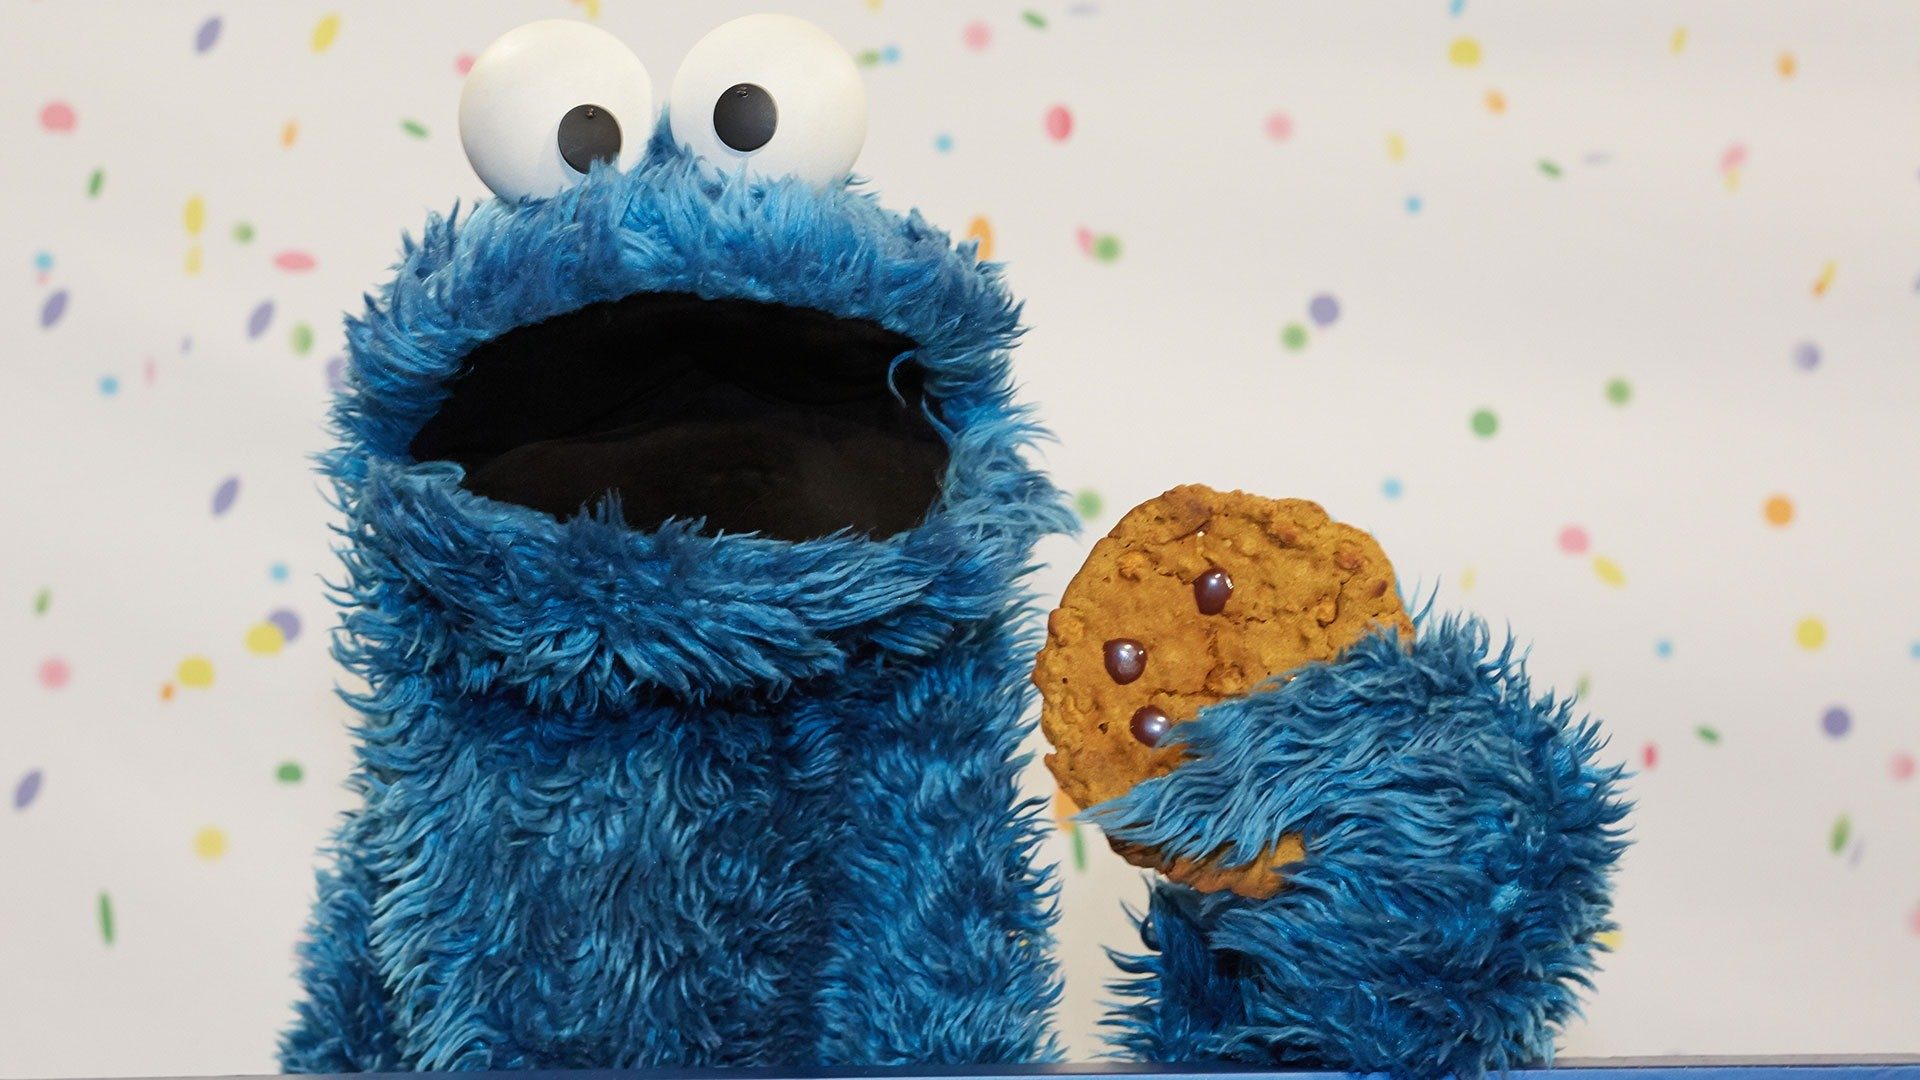 Cute Cookie Monster Wallpaper Hd Cookie Monster Background 53 Images